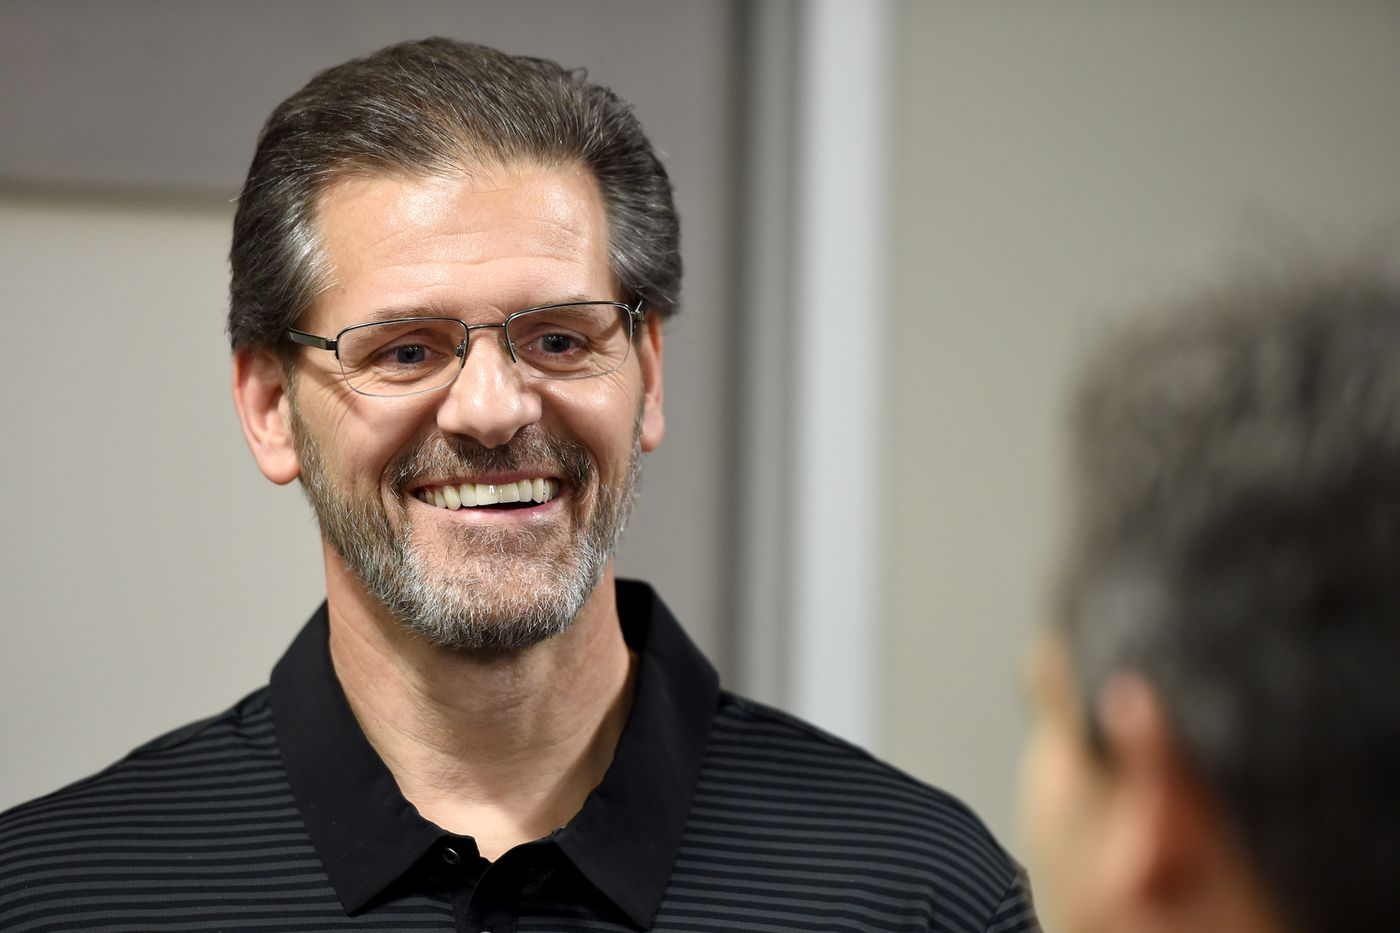 All you need to know about Ron Hextall and his Flyers plan comes down to one trade   Mike Sielski